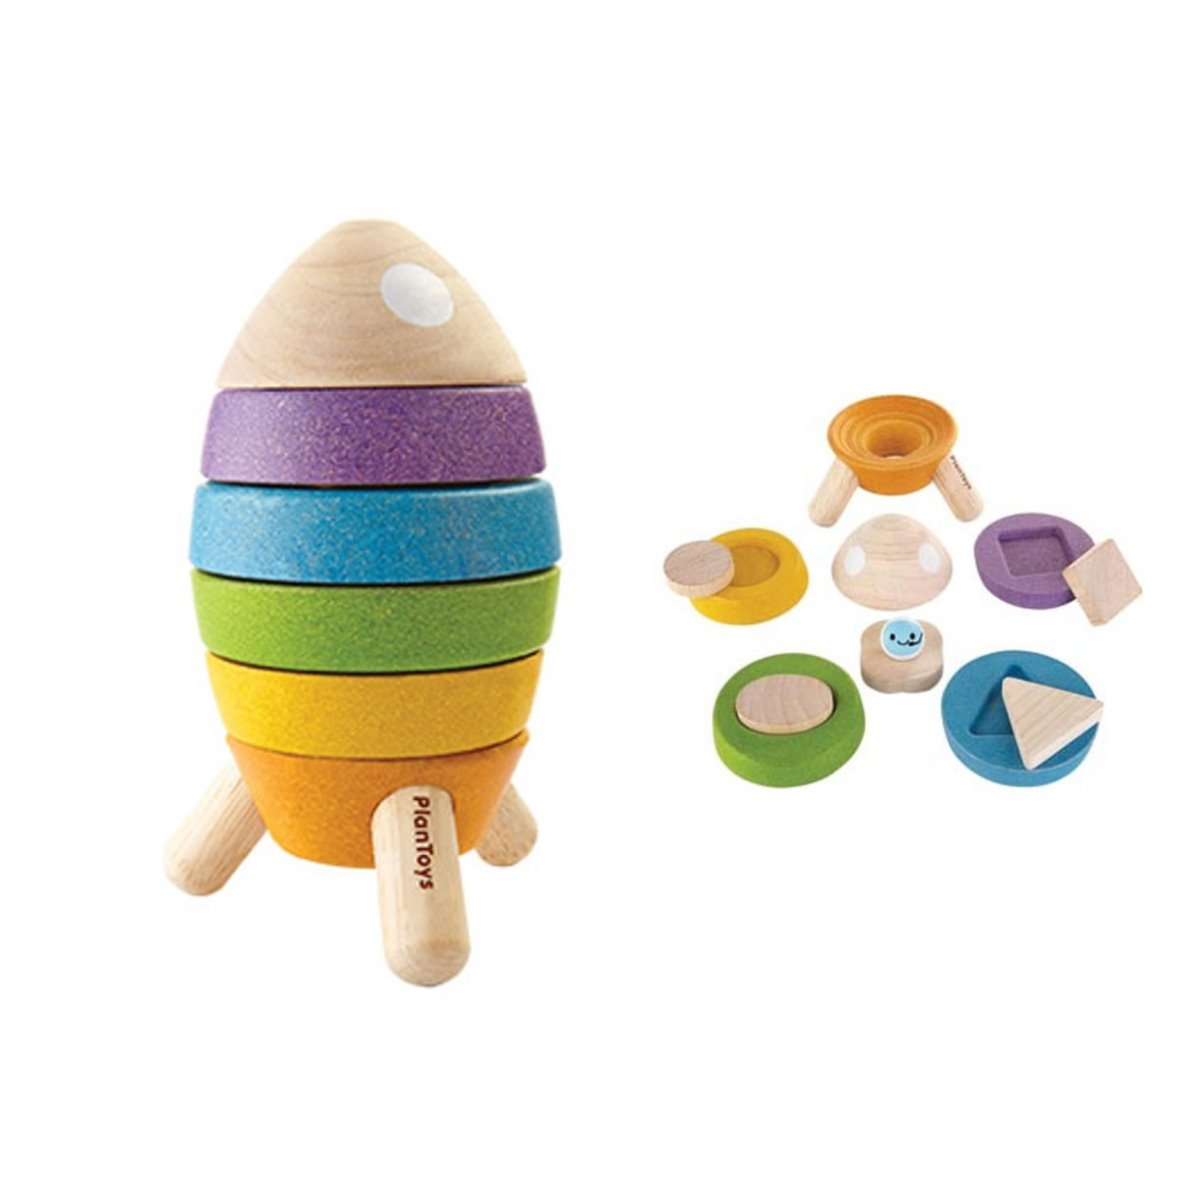 Plan Toys Stacking Rocket at Little Sprout